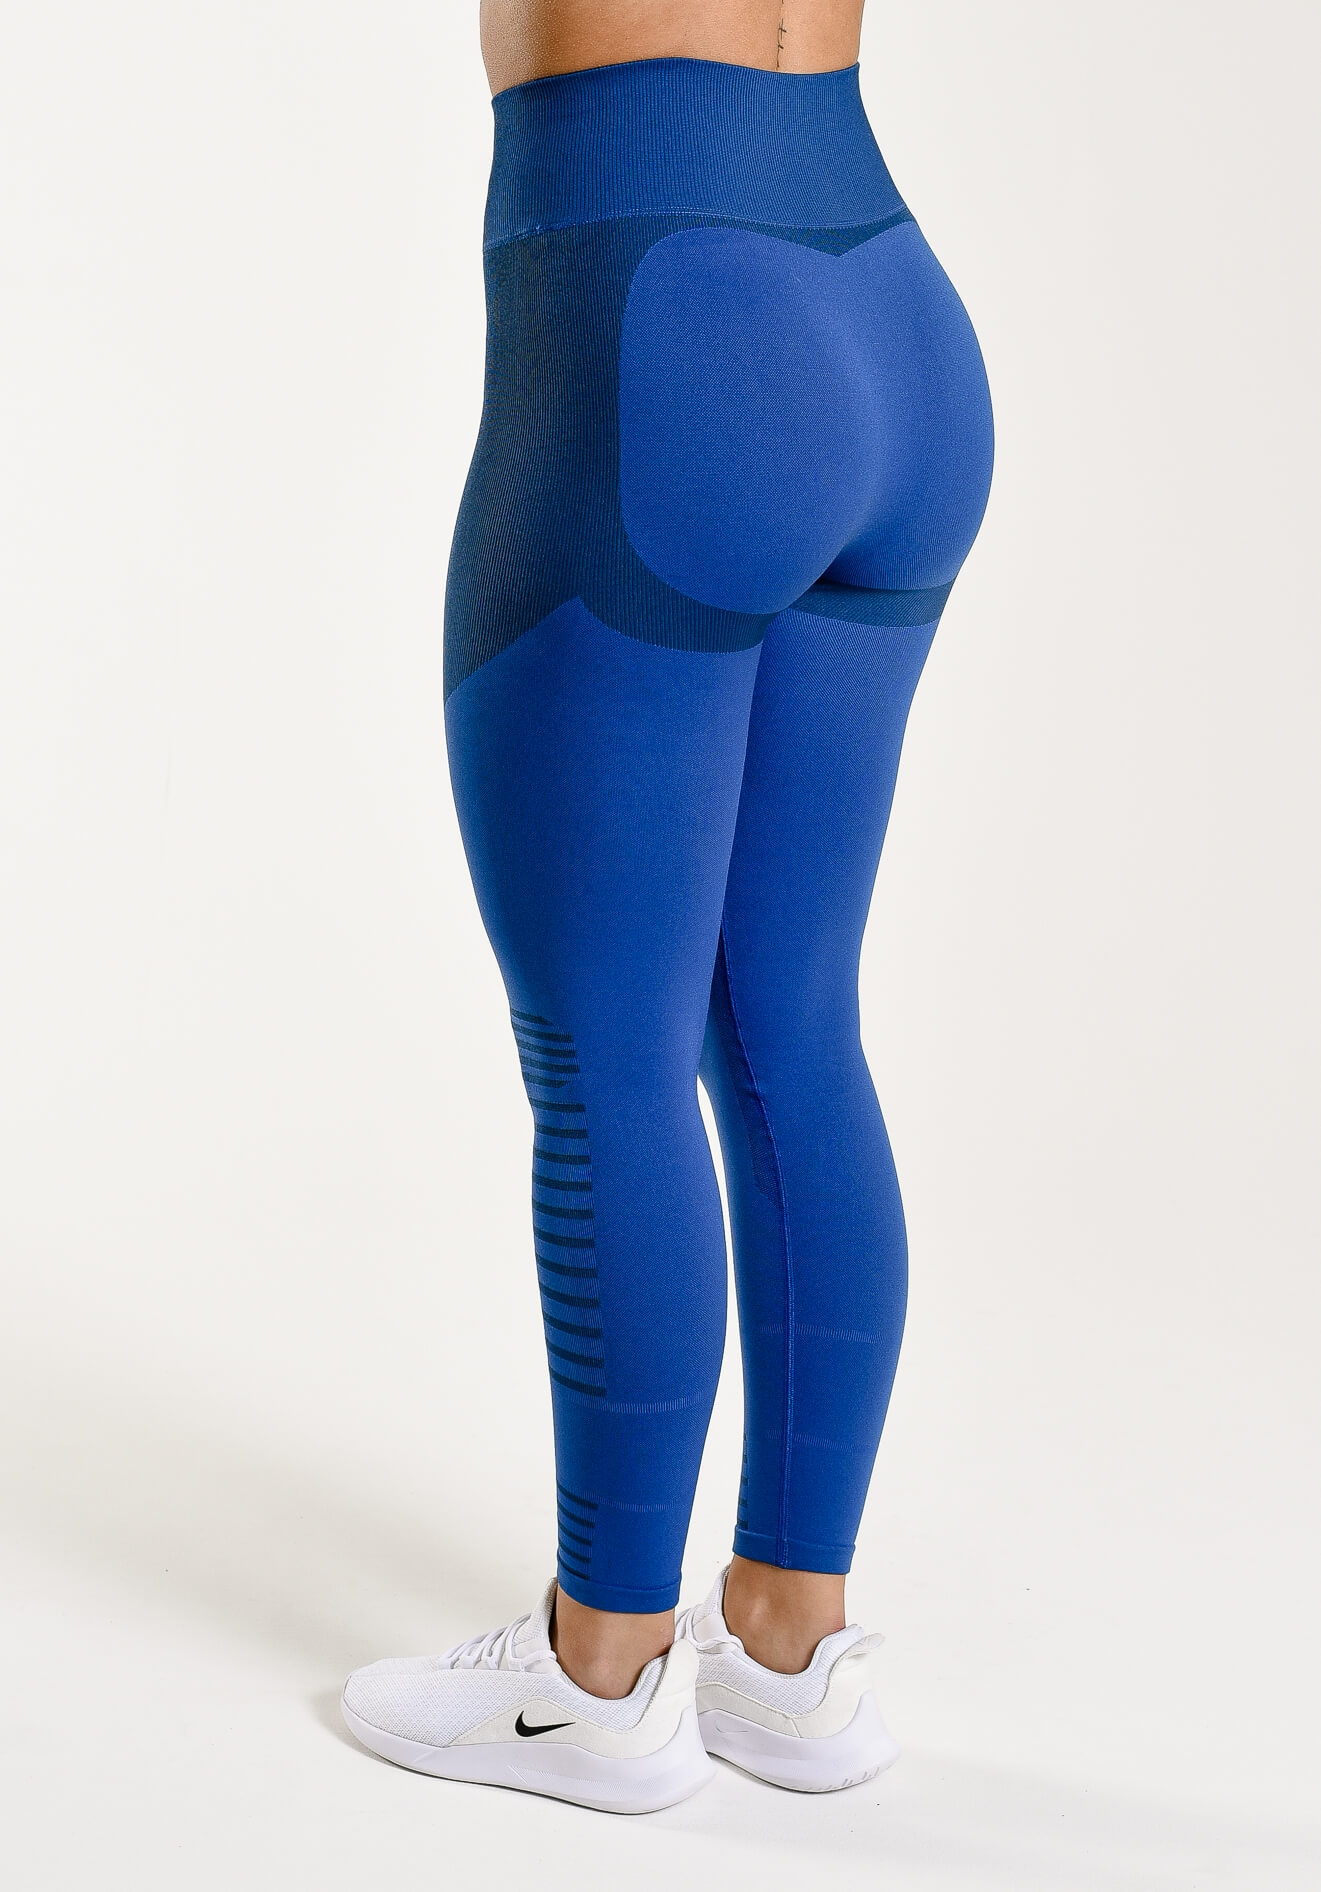 Future Seamless Tights